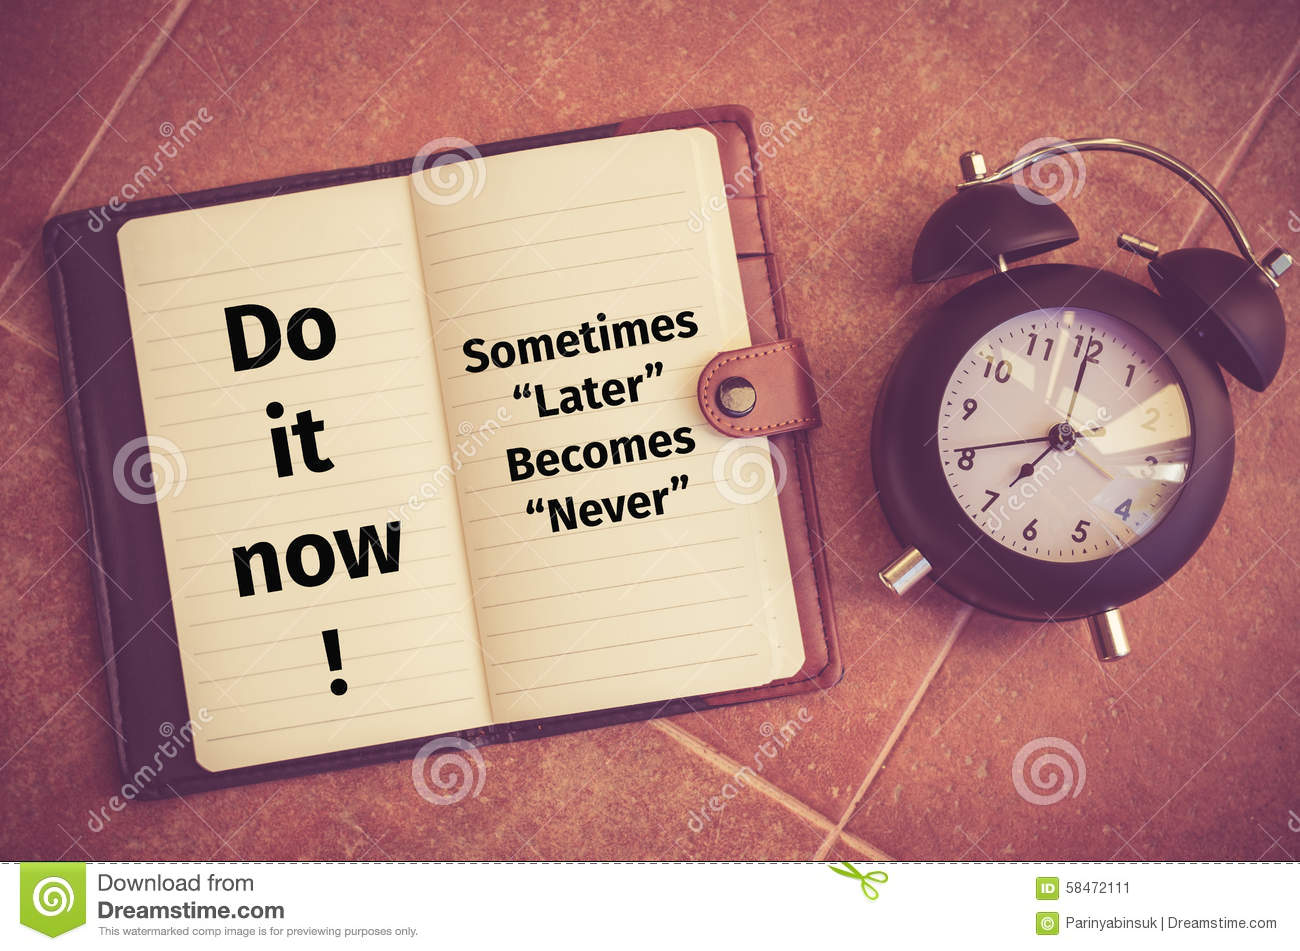 Inspiration quote : Do it now ! Sometimes later becomes never